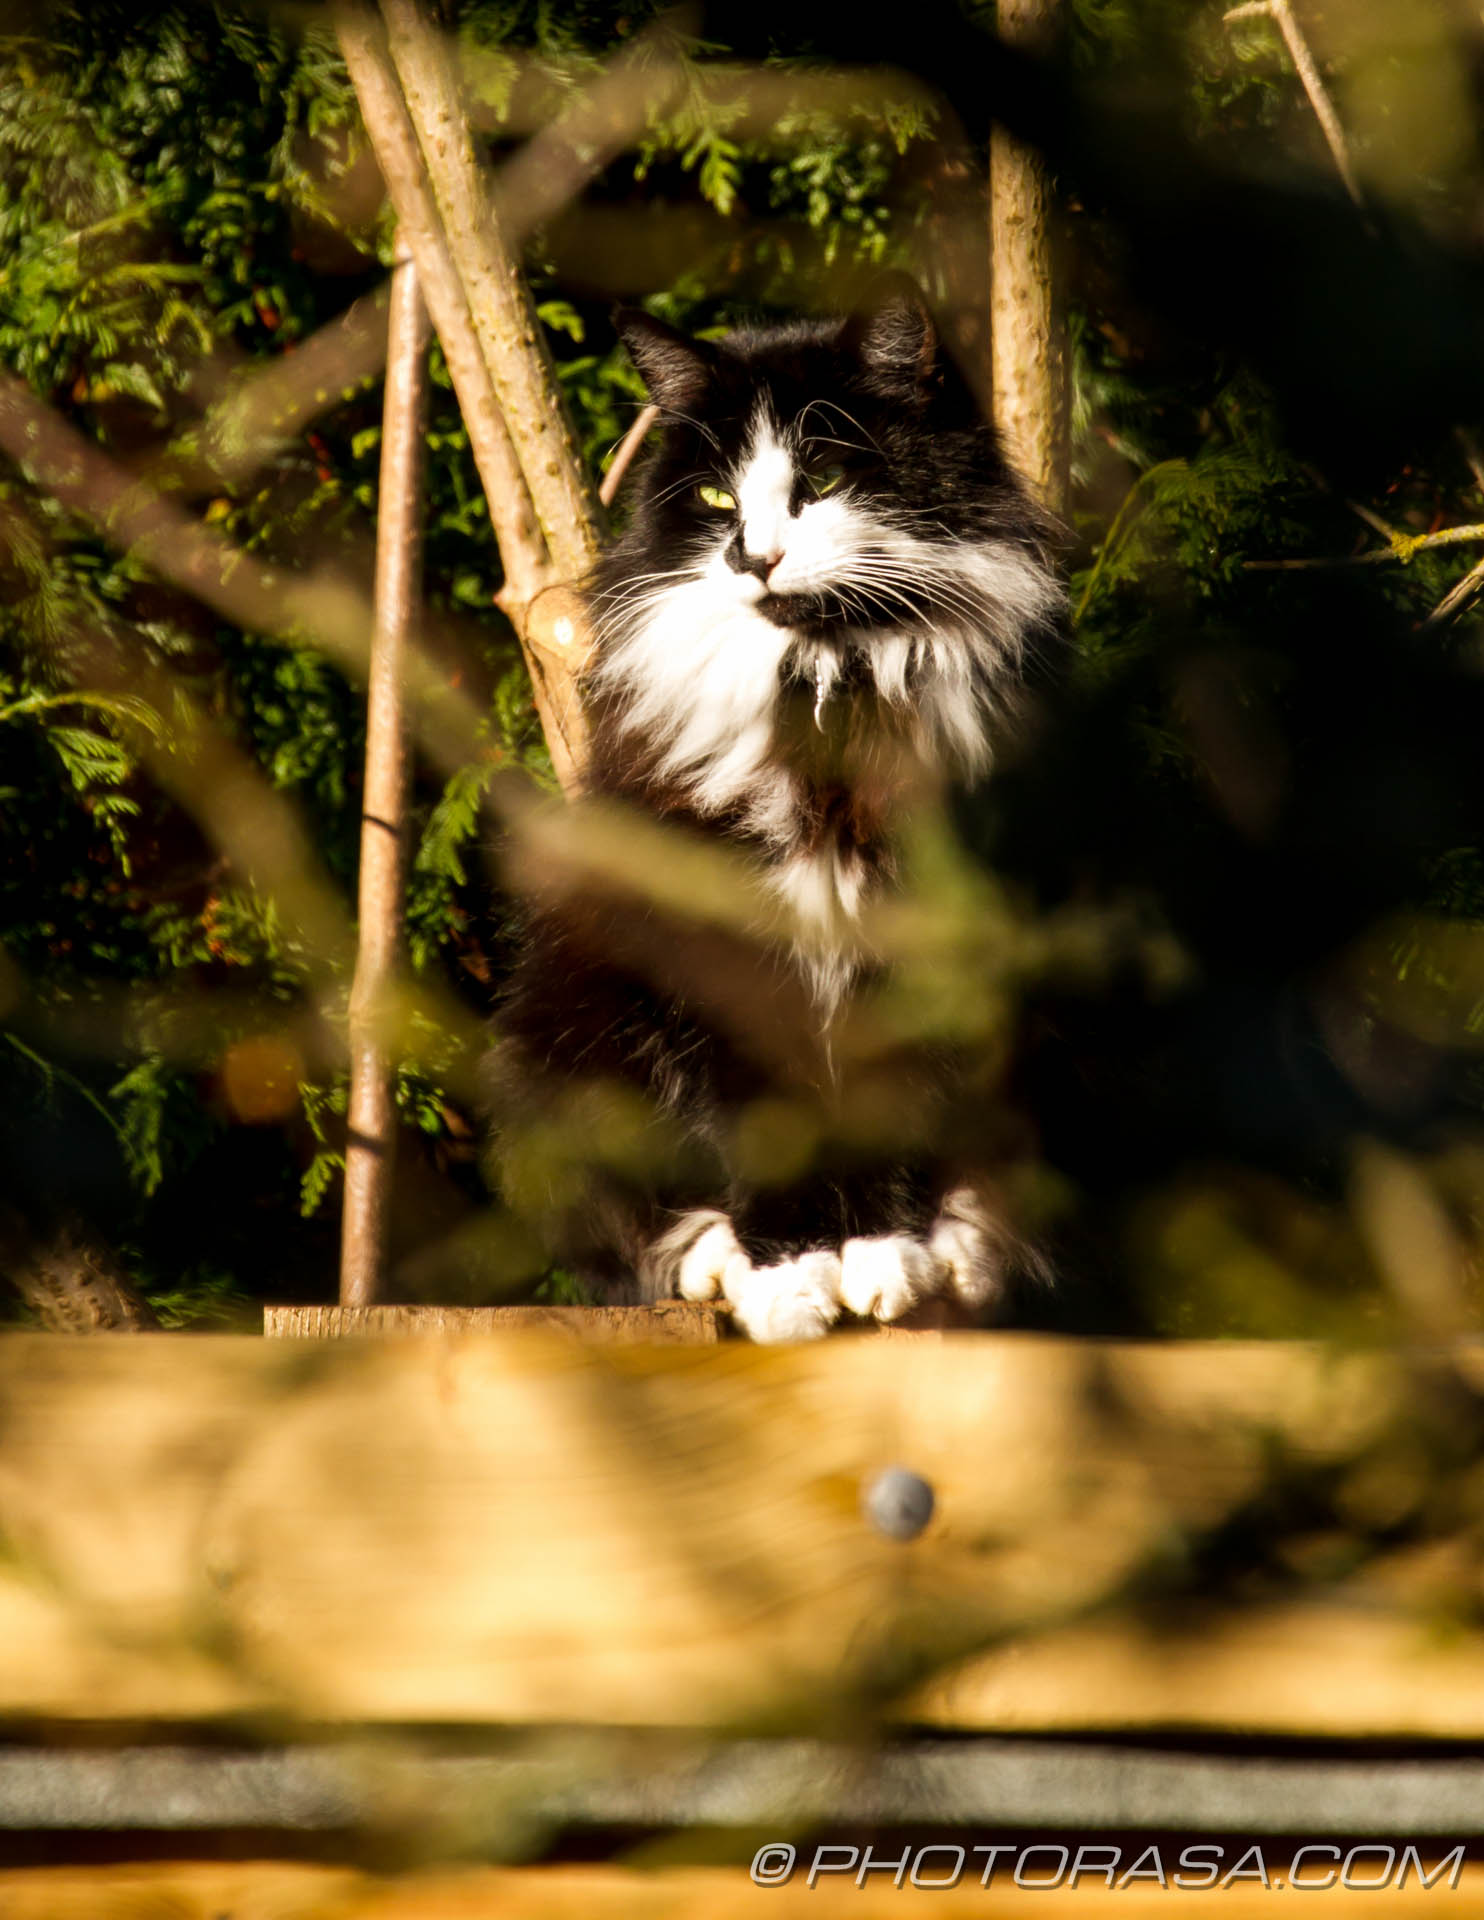 http://photorasa.com/black-white-cats/black-and-white-cat-with-mane-through-trees/